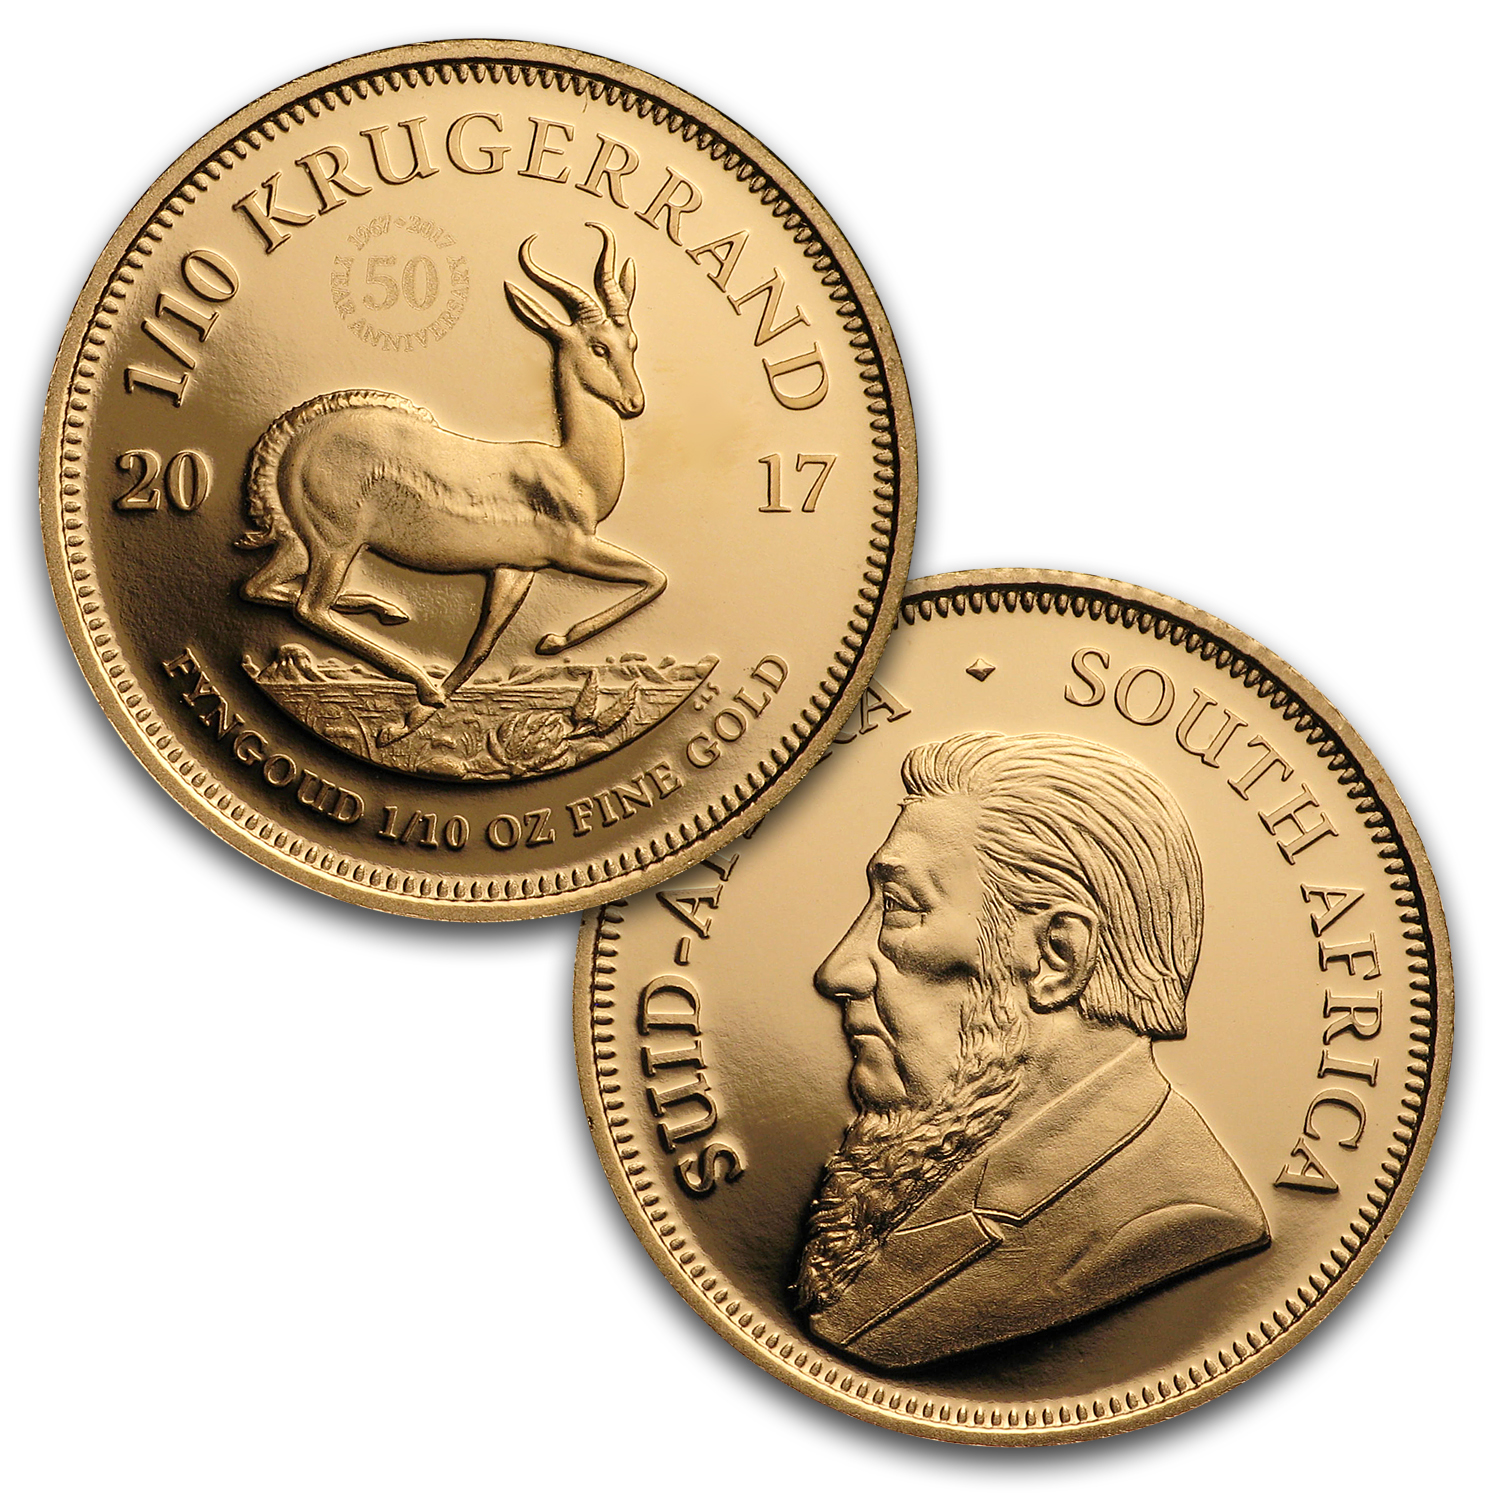 2017 South Africa 3-Coin Krugerrand 50th Anniversary Proof Set